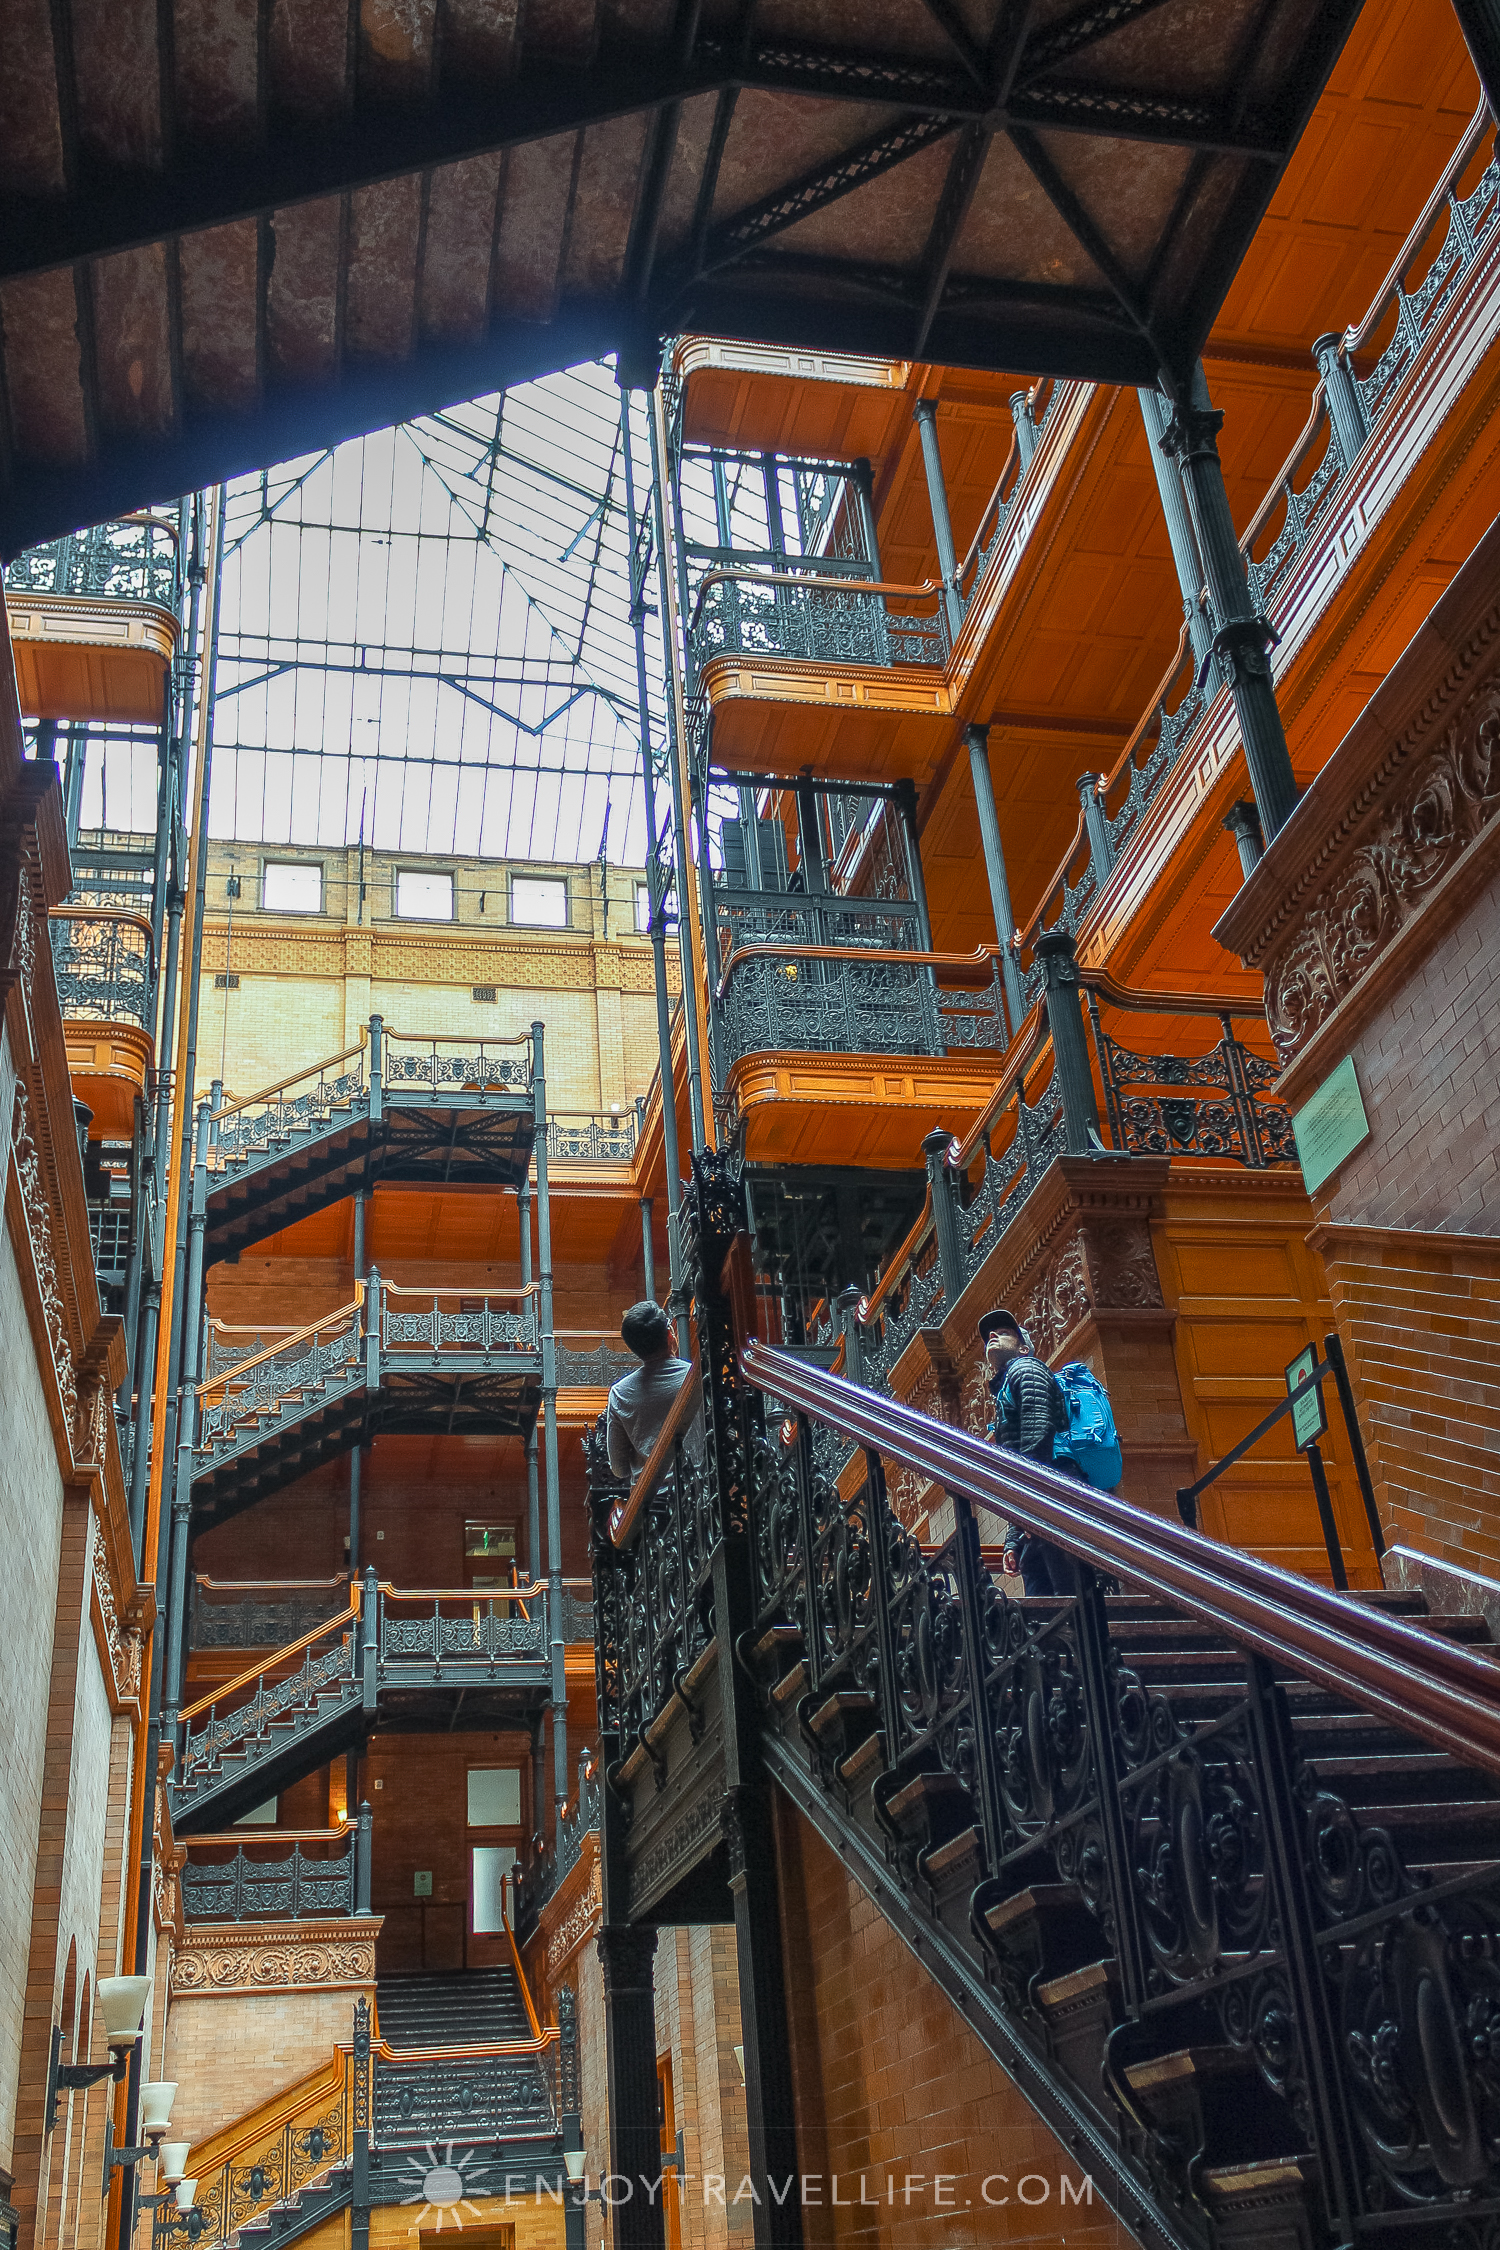 The Bradbury Building Los Angeles - Hollywood superstar and architectural landmark interior